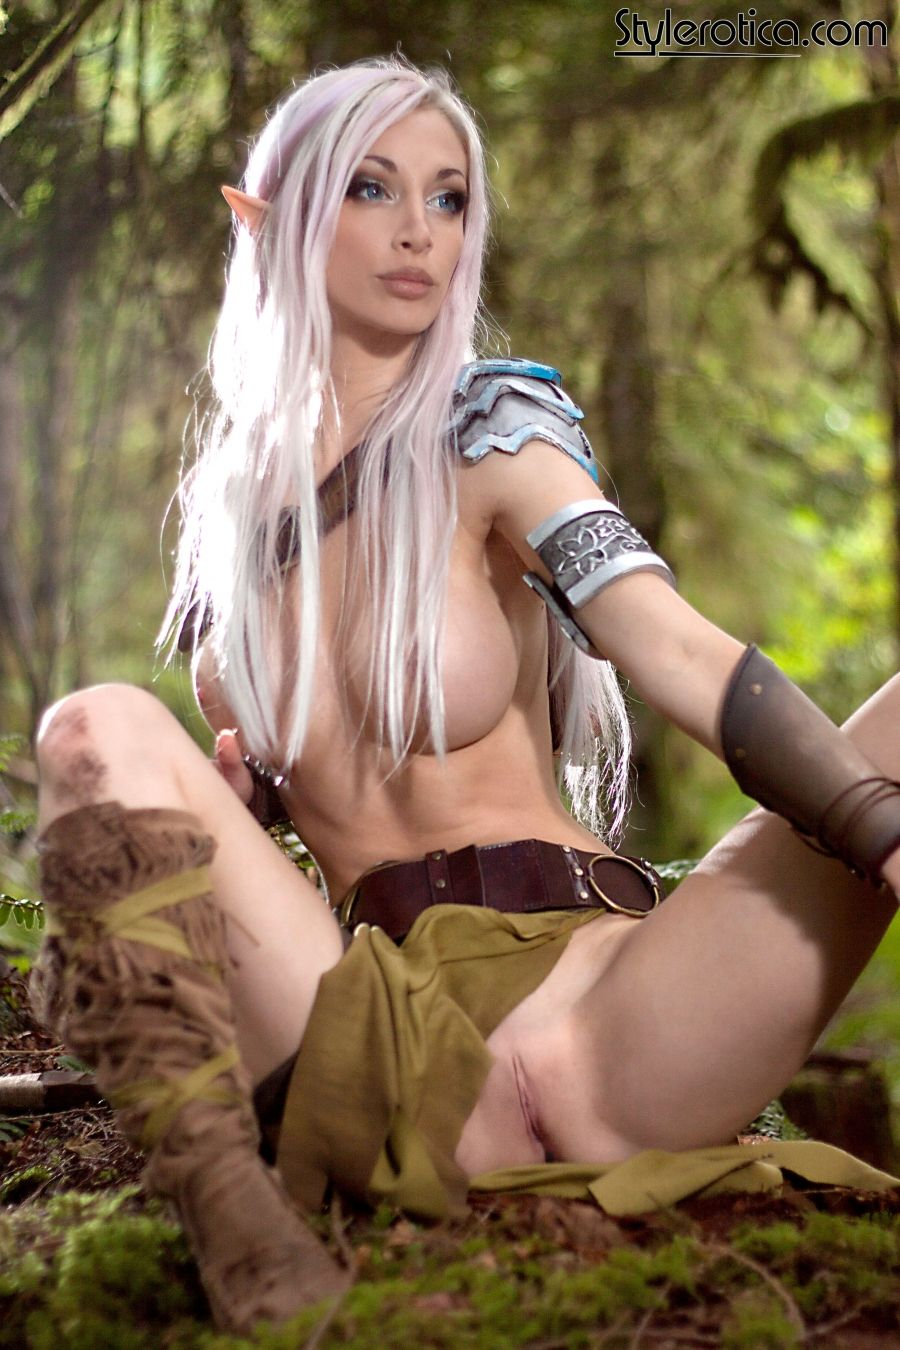 Porn pics elf fantasy cosplay porncraft cute women